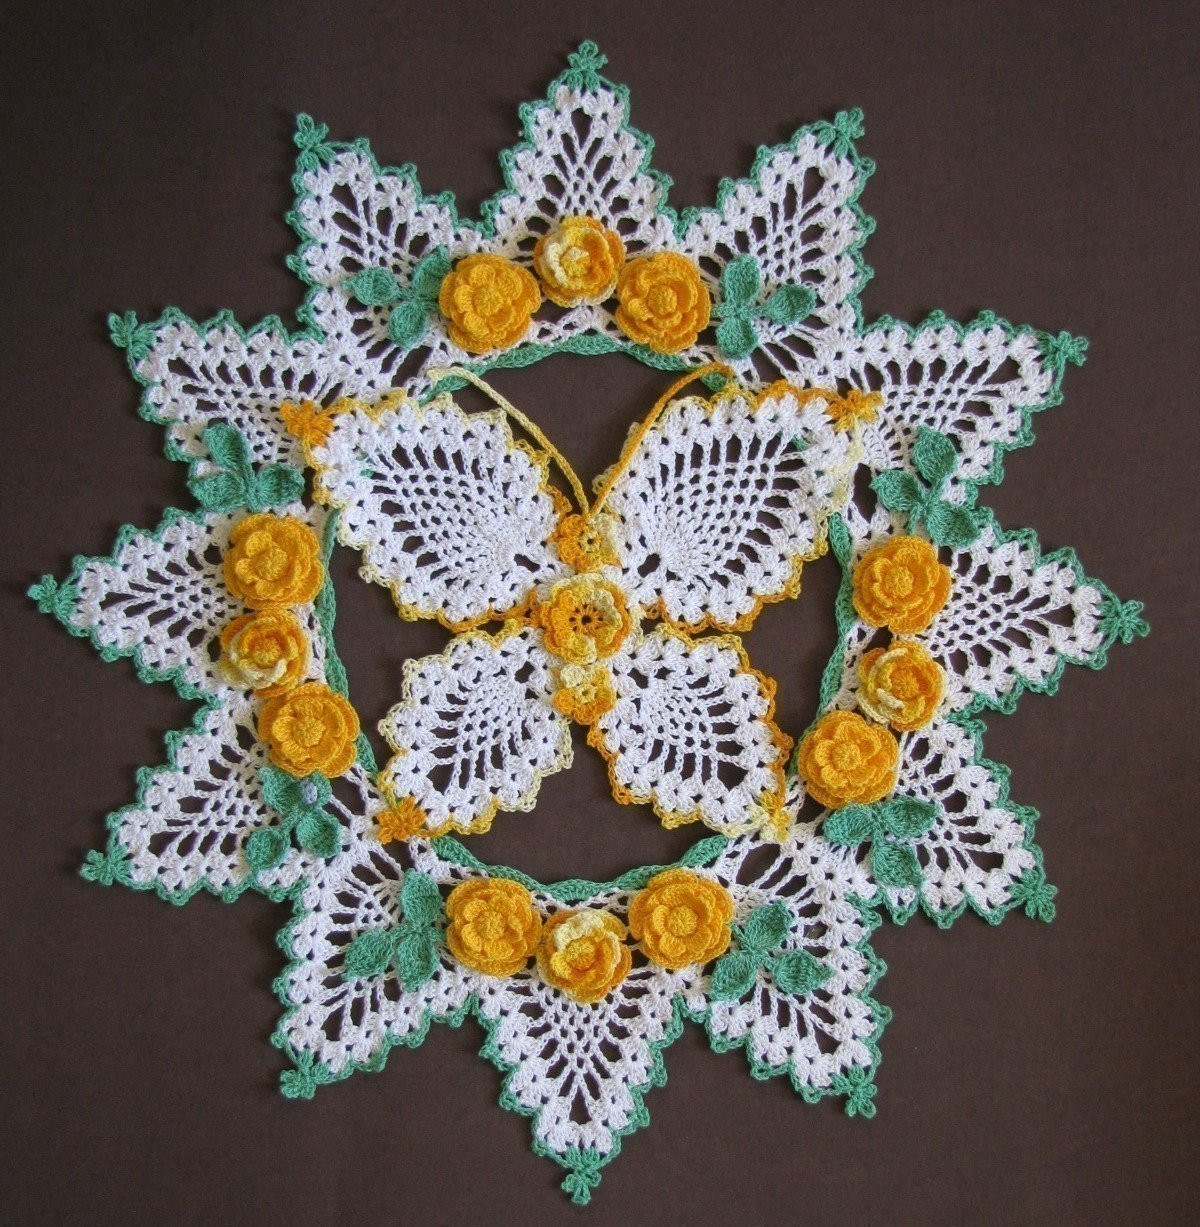 CROCHET DOILY PATTERN PINEAPPLE Crochet — Learn How to